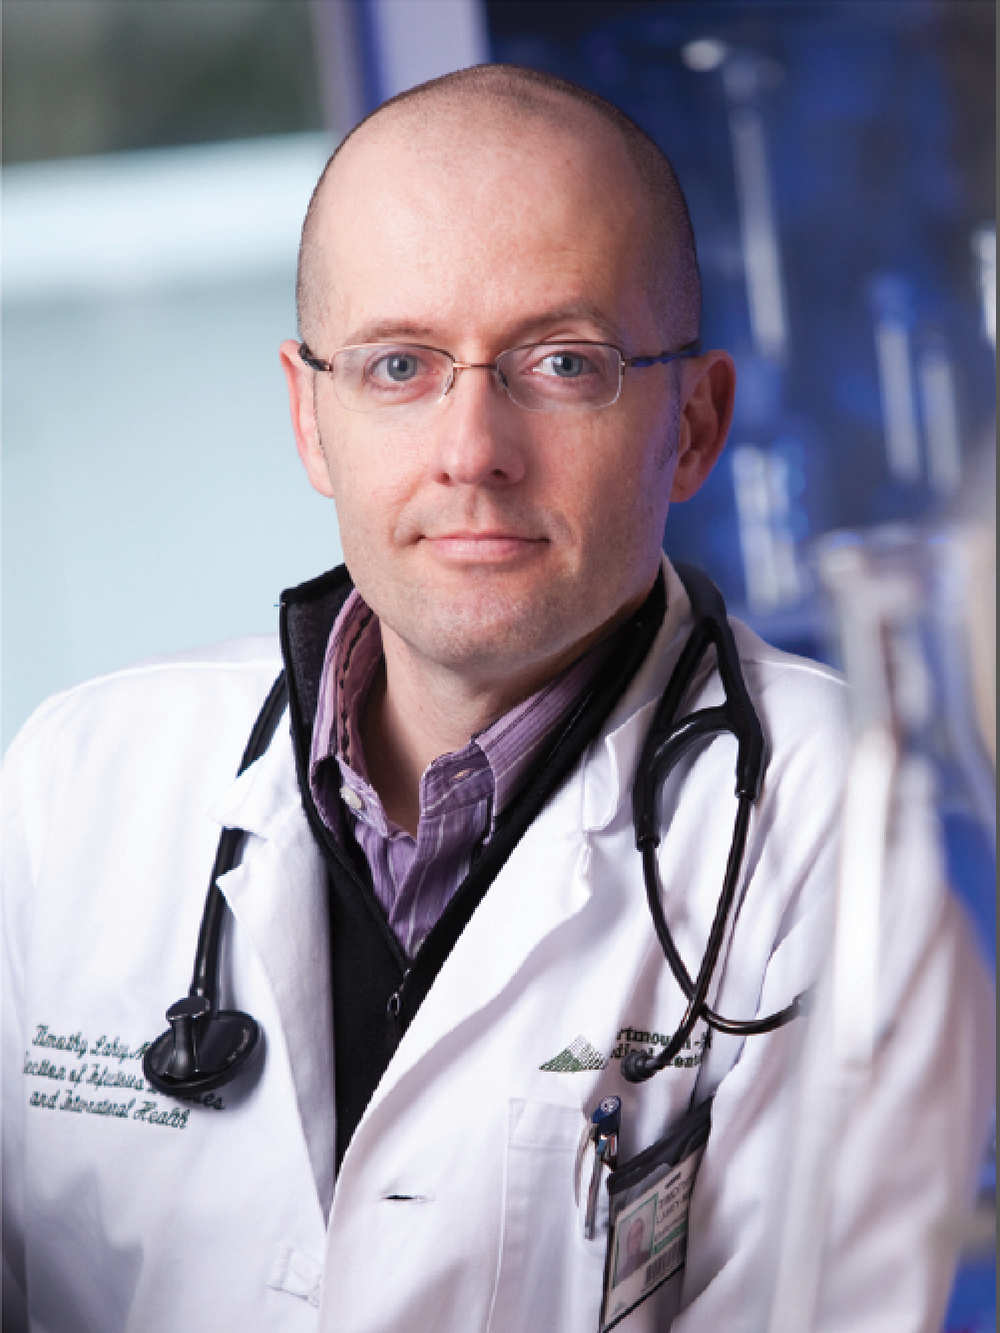 Tim Lahey, MD MMSc  An HIV doc and clinical ethicist, I write about patient stories, medical education and the latest HIV science.